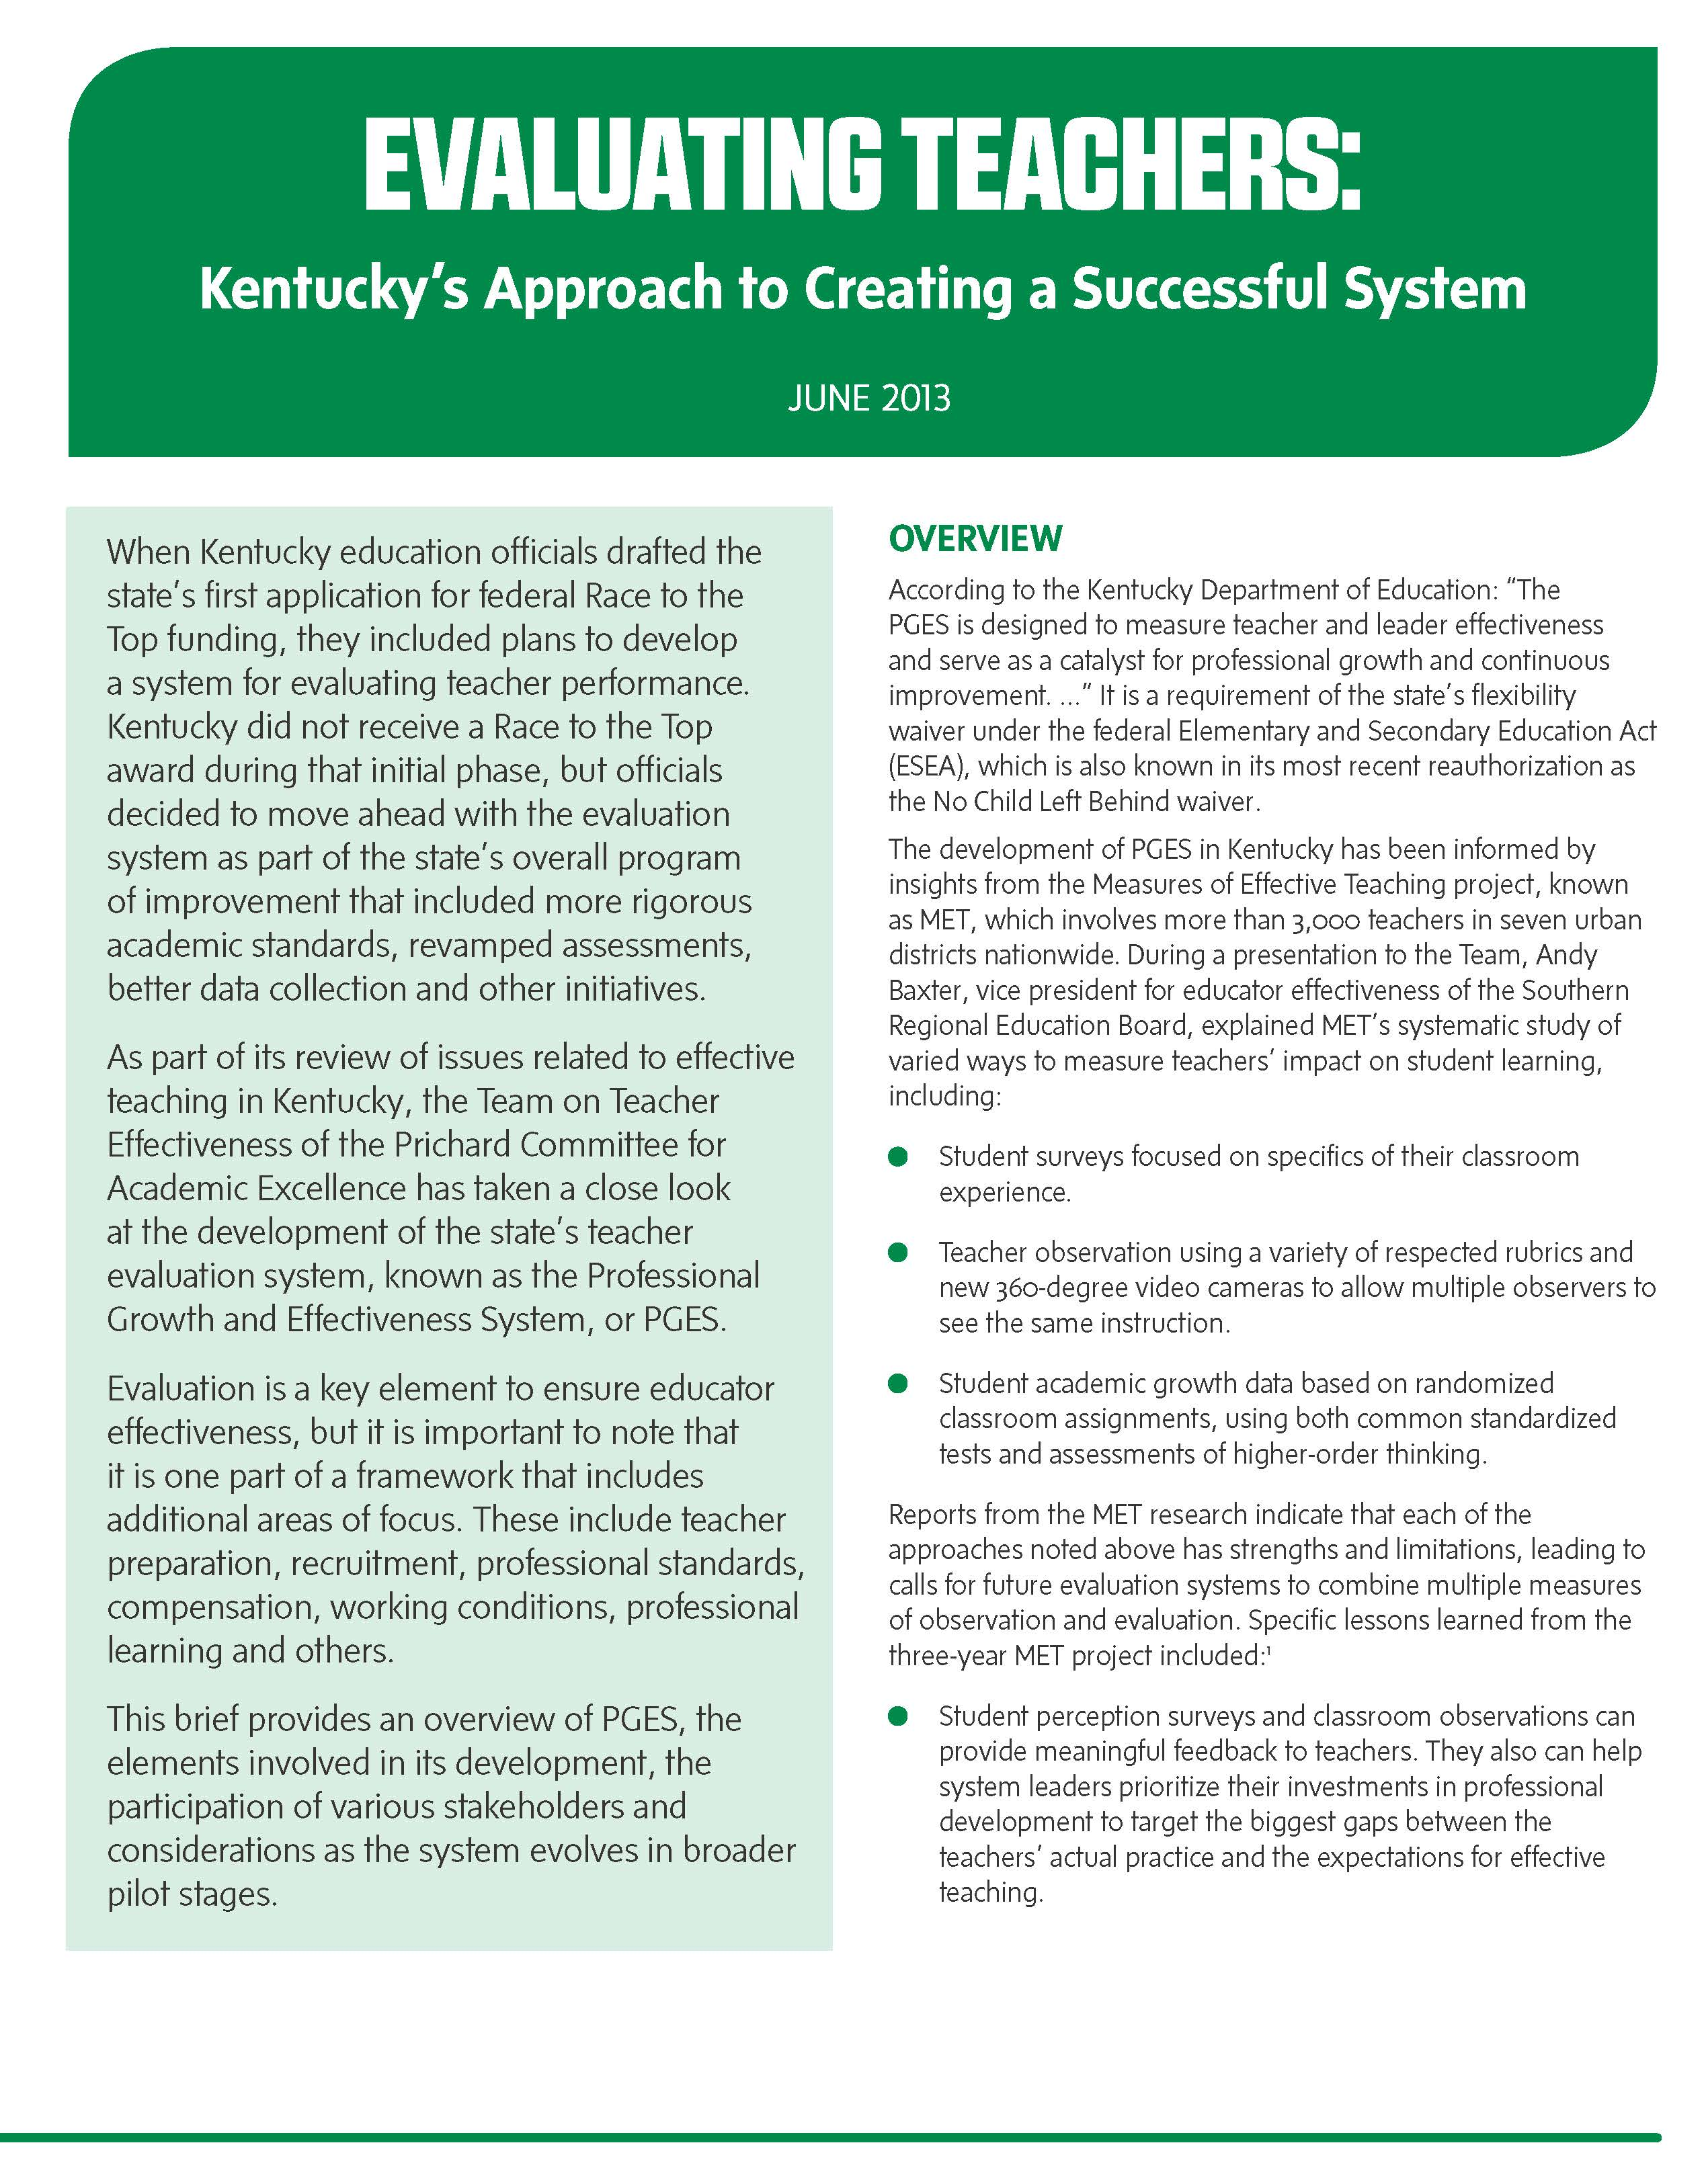 Evaluating Teachers: Kentucky's Approach to Creating a Successful System